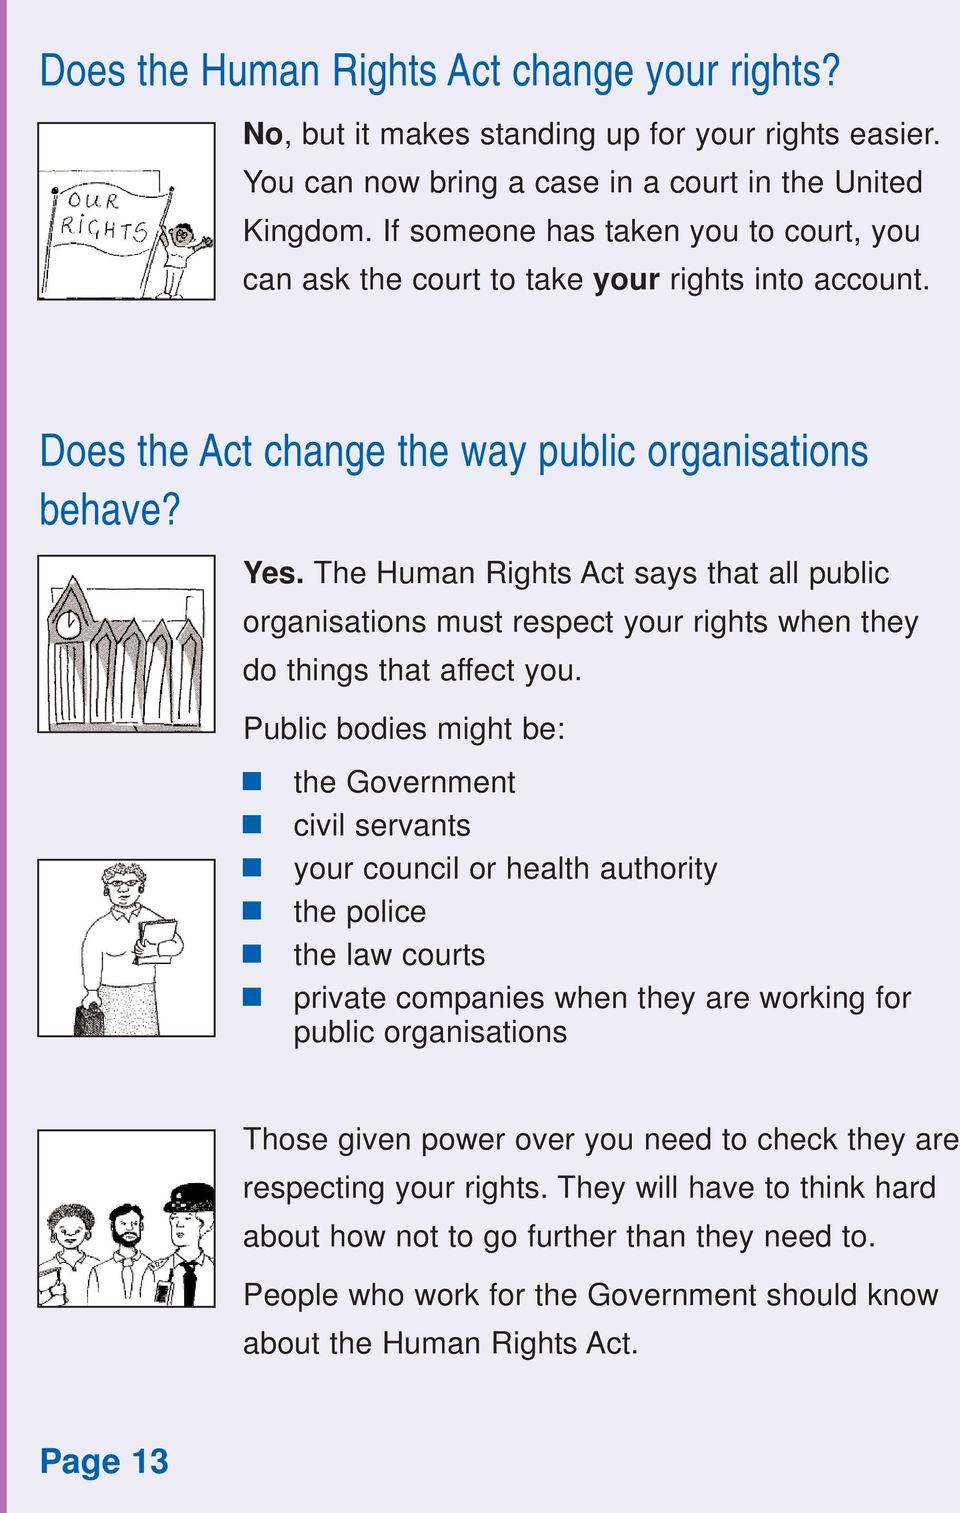 The Human Rights Act says that all public organisations must respect your rights when they do things that affect you.